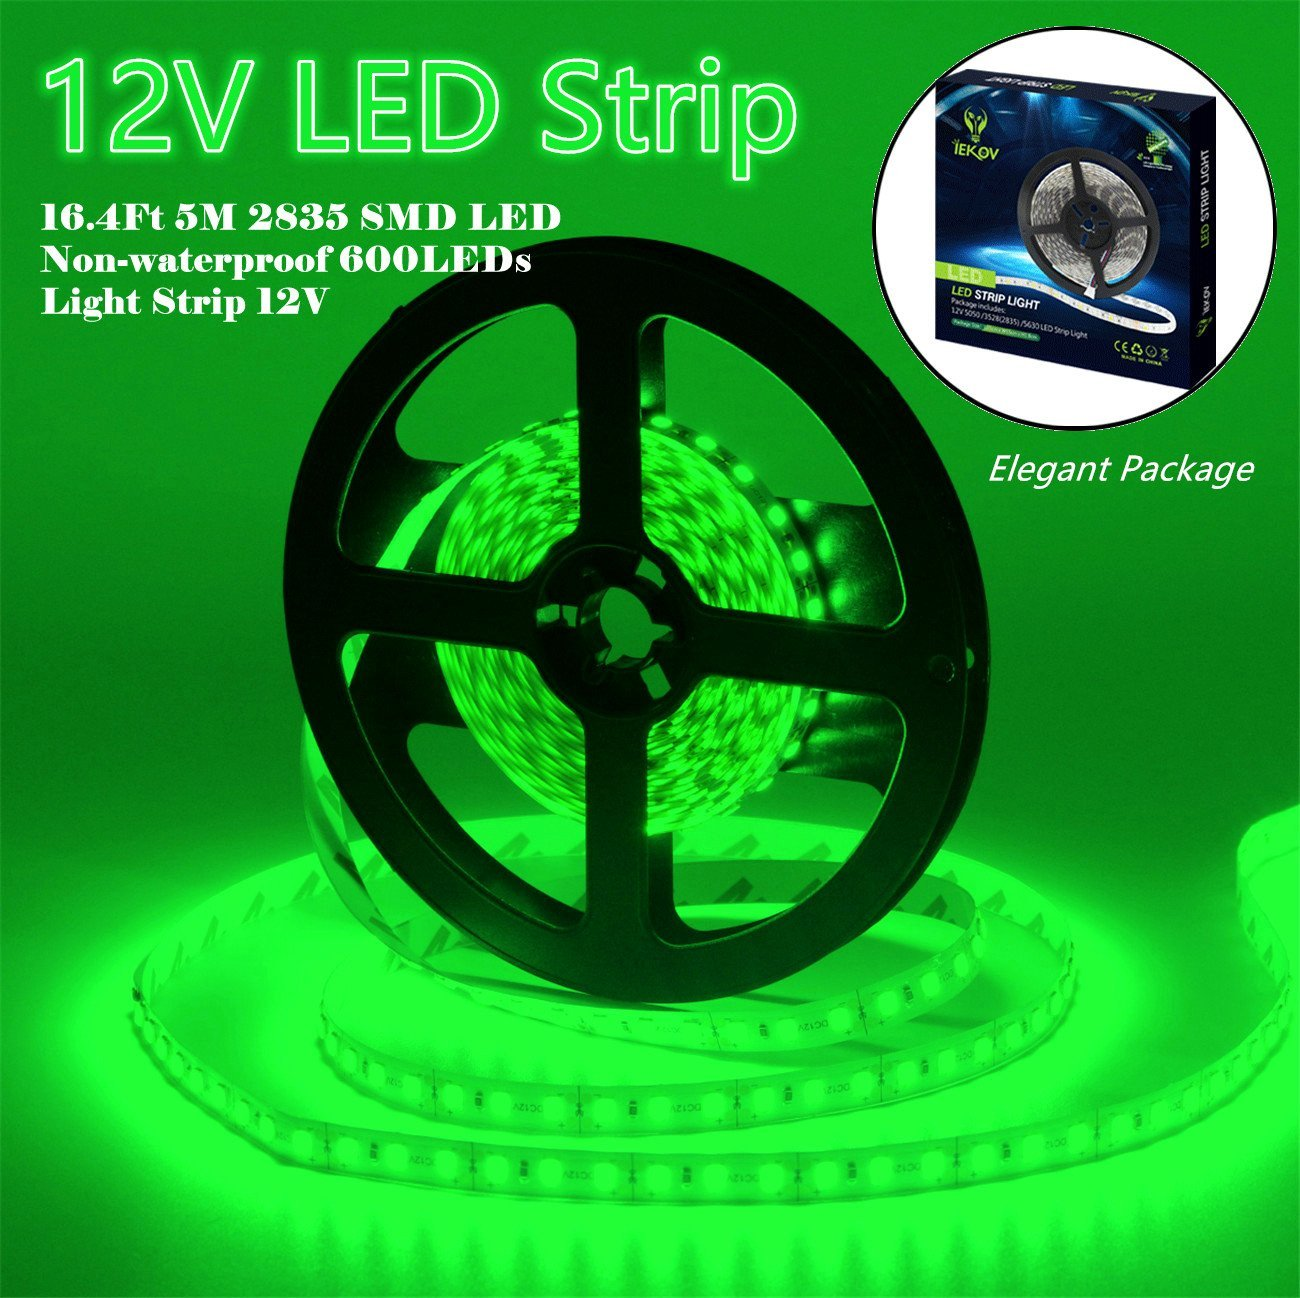 Led Strip Lights, IEKOV™ 2835 SMD 600LEDs Non-Waterproof Flexible Xmas Decorative Lighting Strips, LED Tape, 5M 16.4Ft DC12V, 3 times brightness than SMD 3528 LED Light Strip (Green)